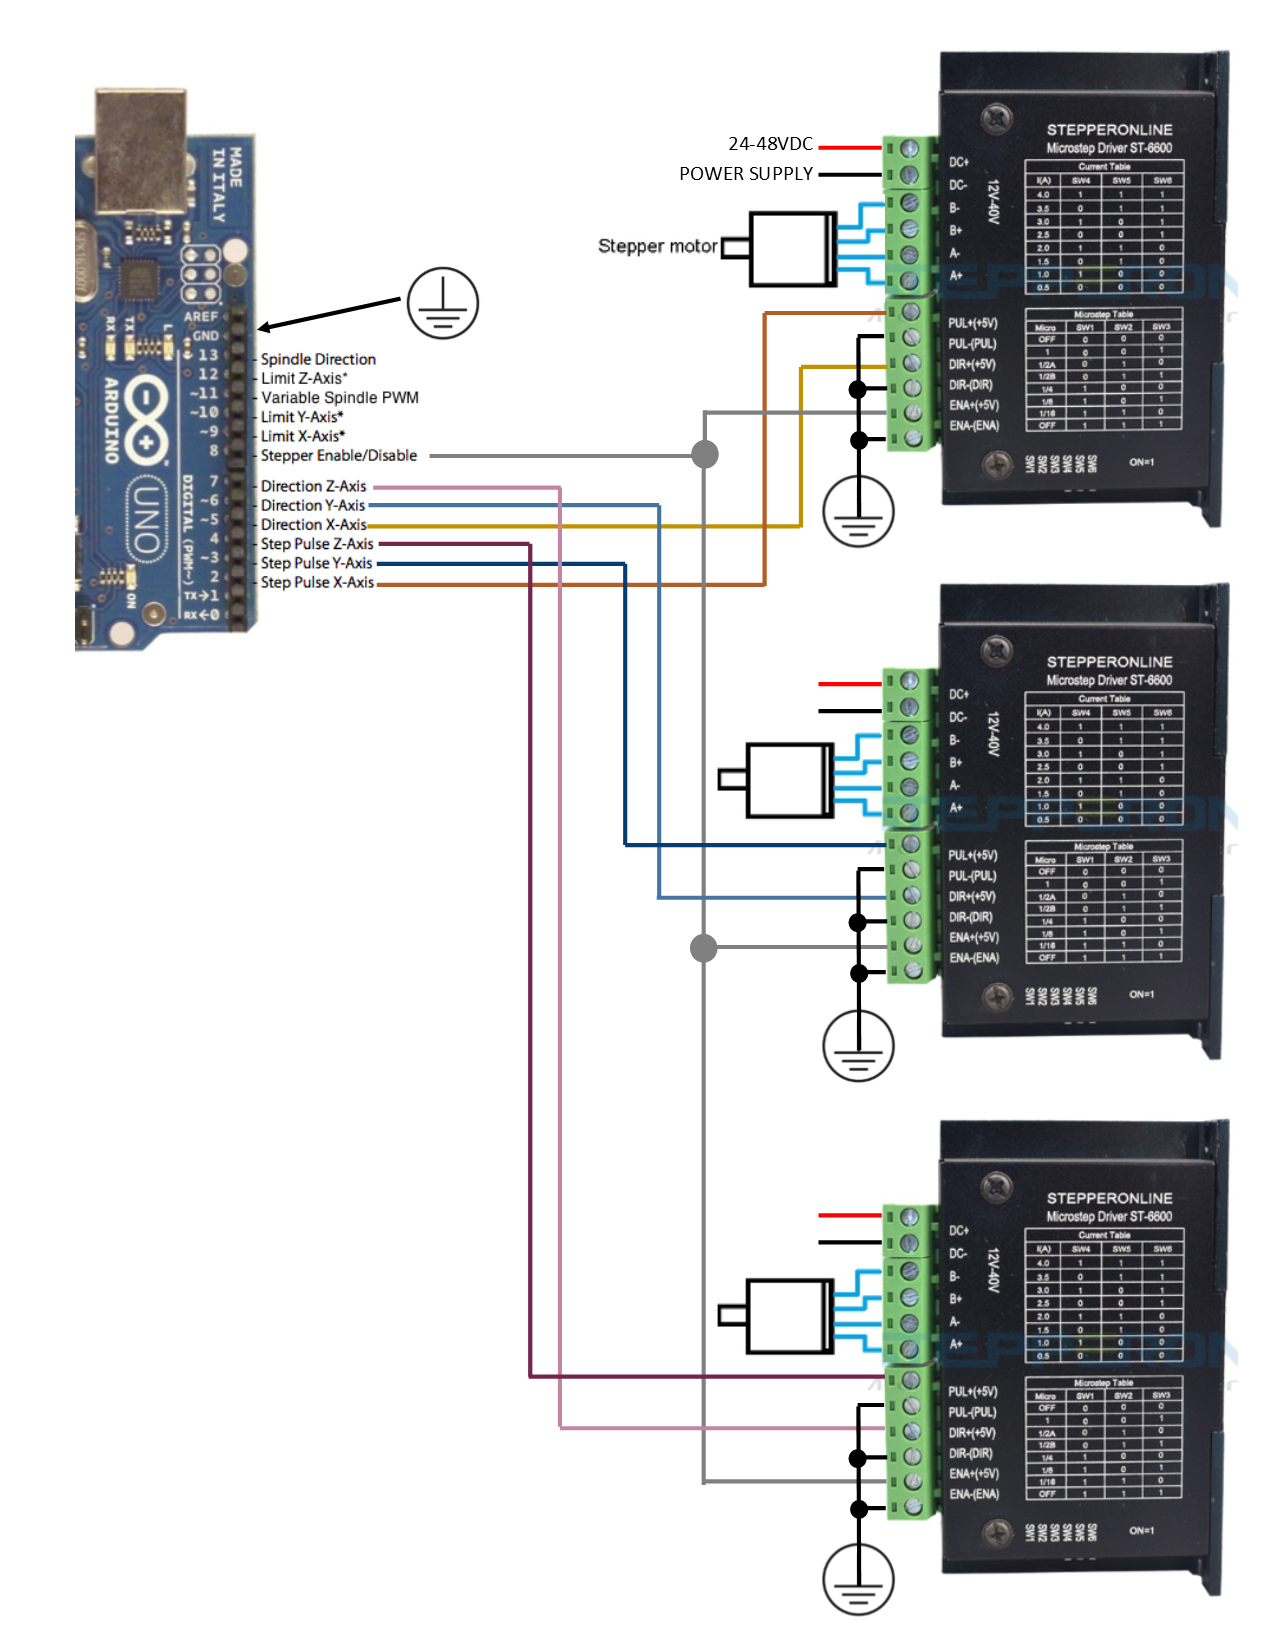 079300840cd92ad62e5853e4d39ce5dcca1c9e06 grbl wiring diagram arduino cnc shield wiring \u2022 wiring diagrams  at gsmx.co